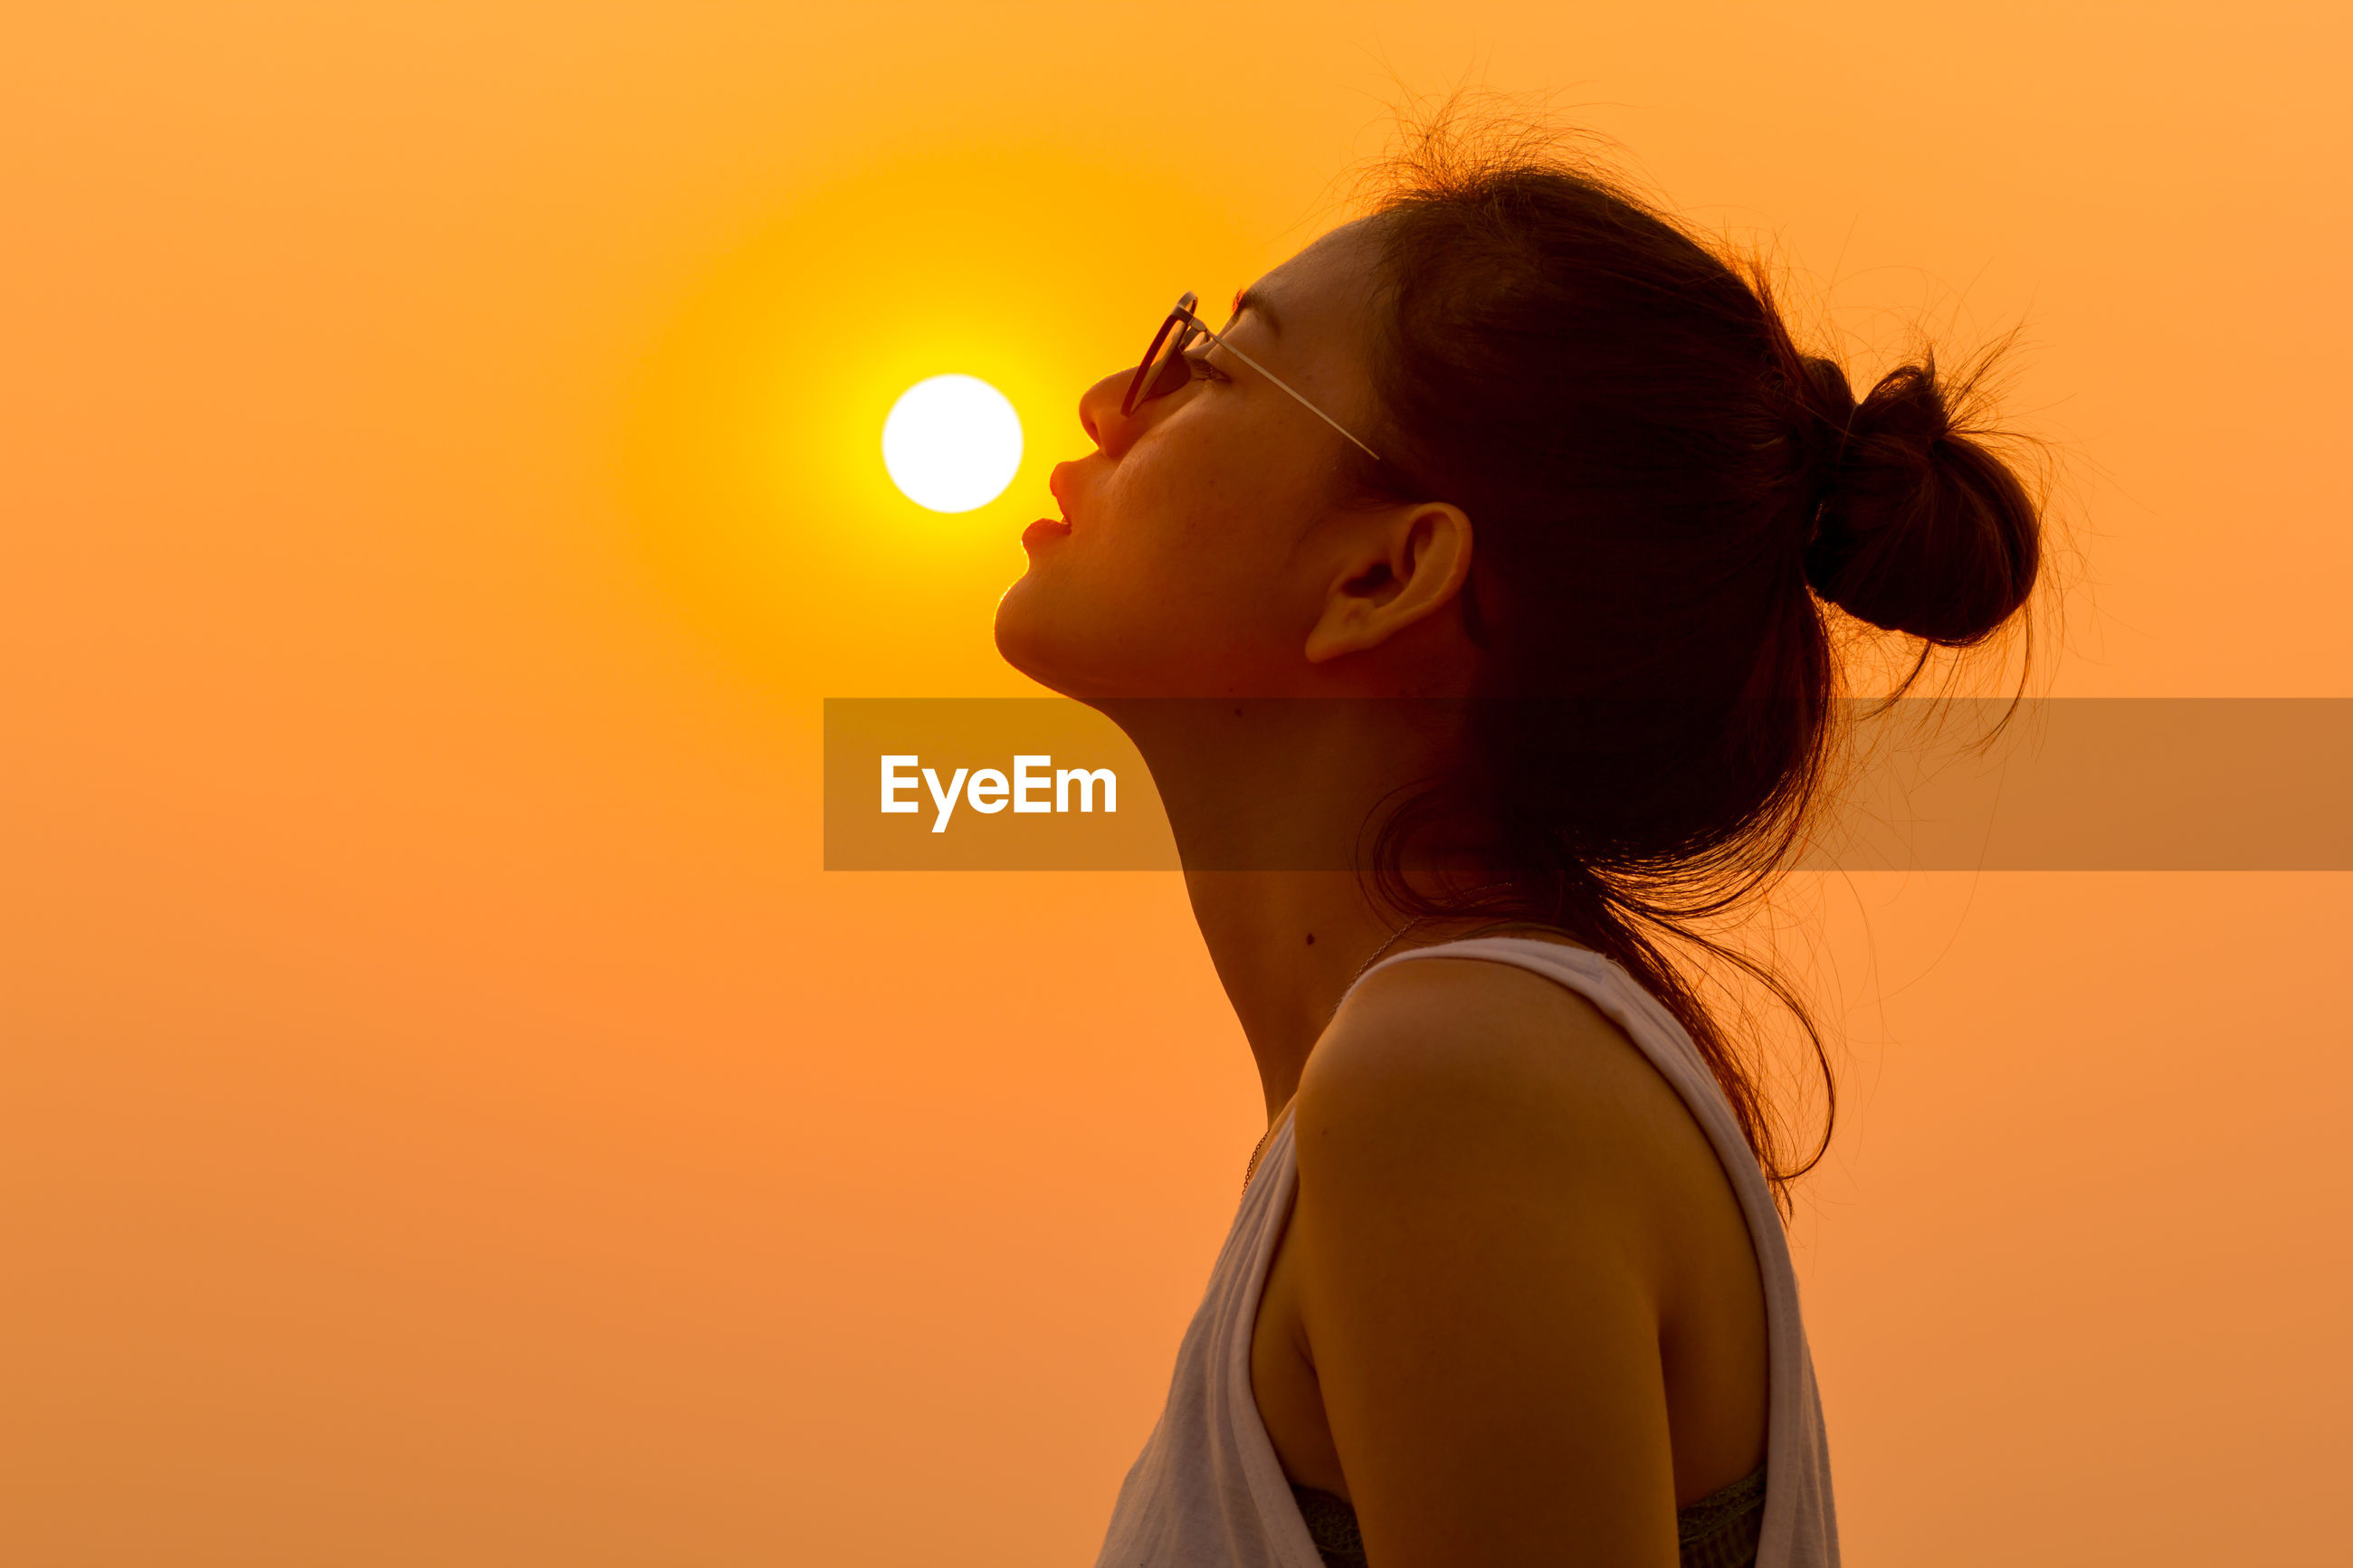 Optical illusion of woman reaching sun against clear sky during sunset